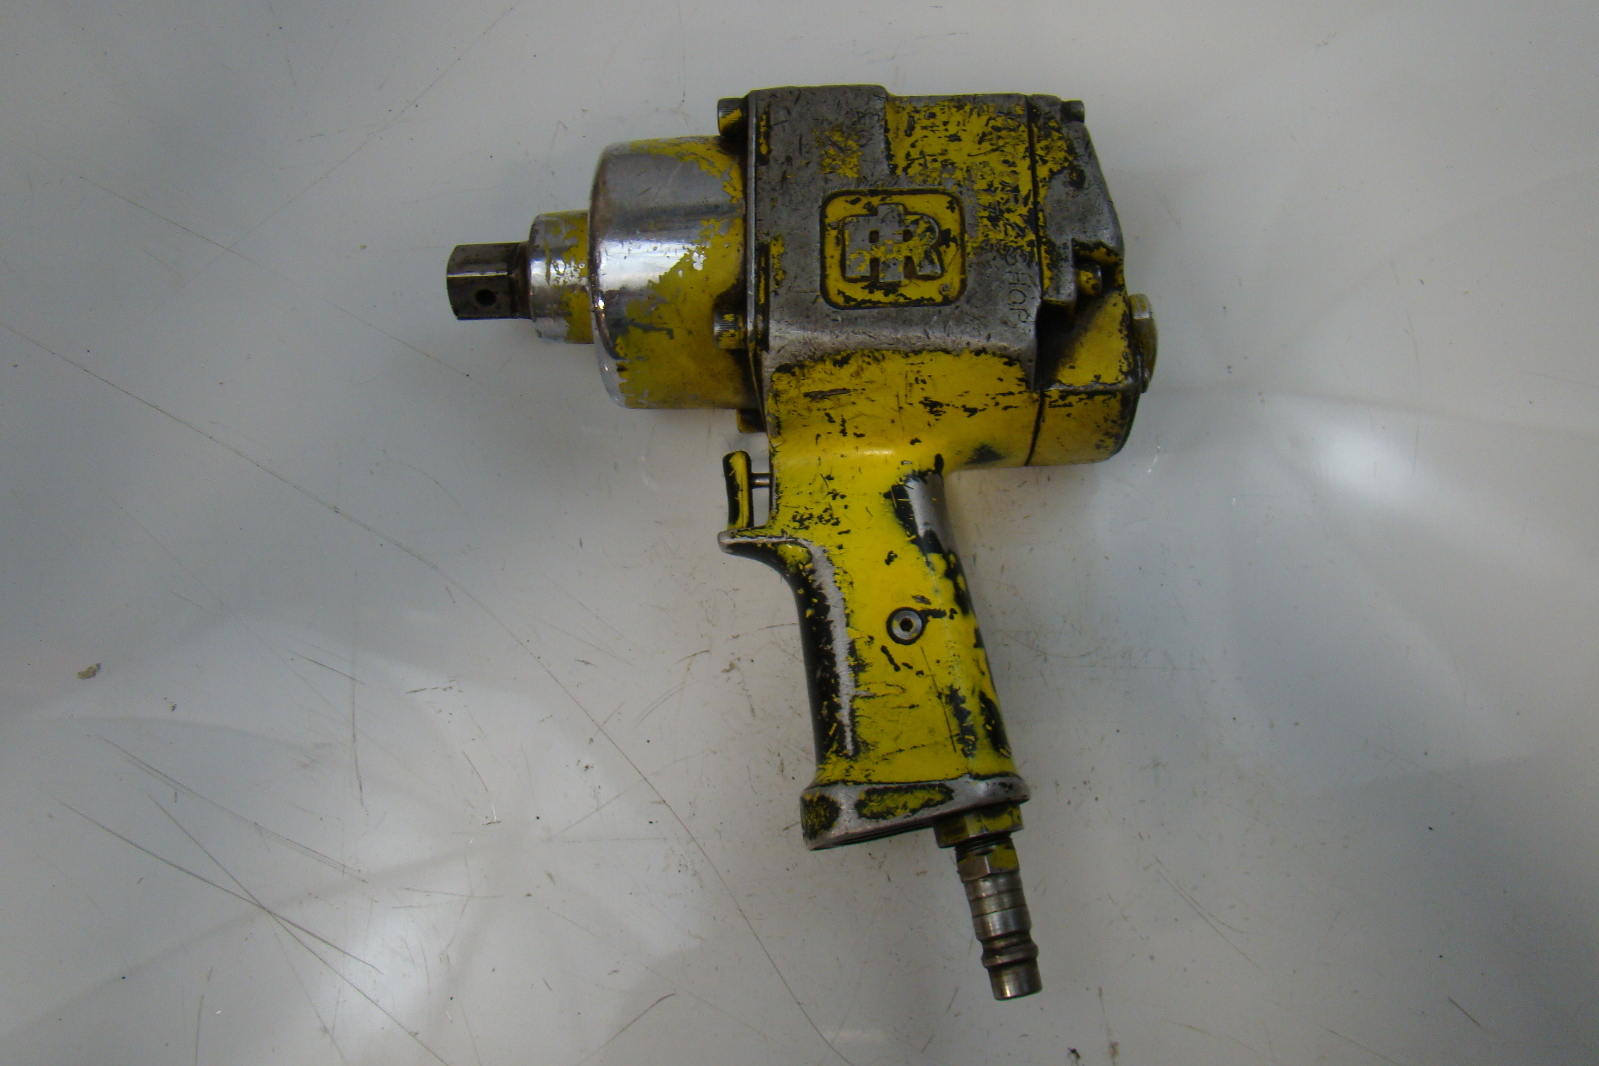 Details about Ingersoll Rand Pneumatic Impact Wrench 3/4